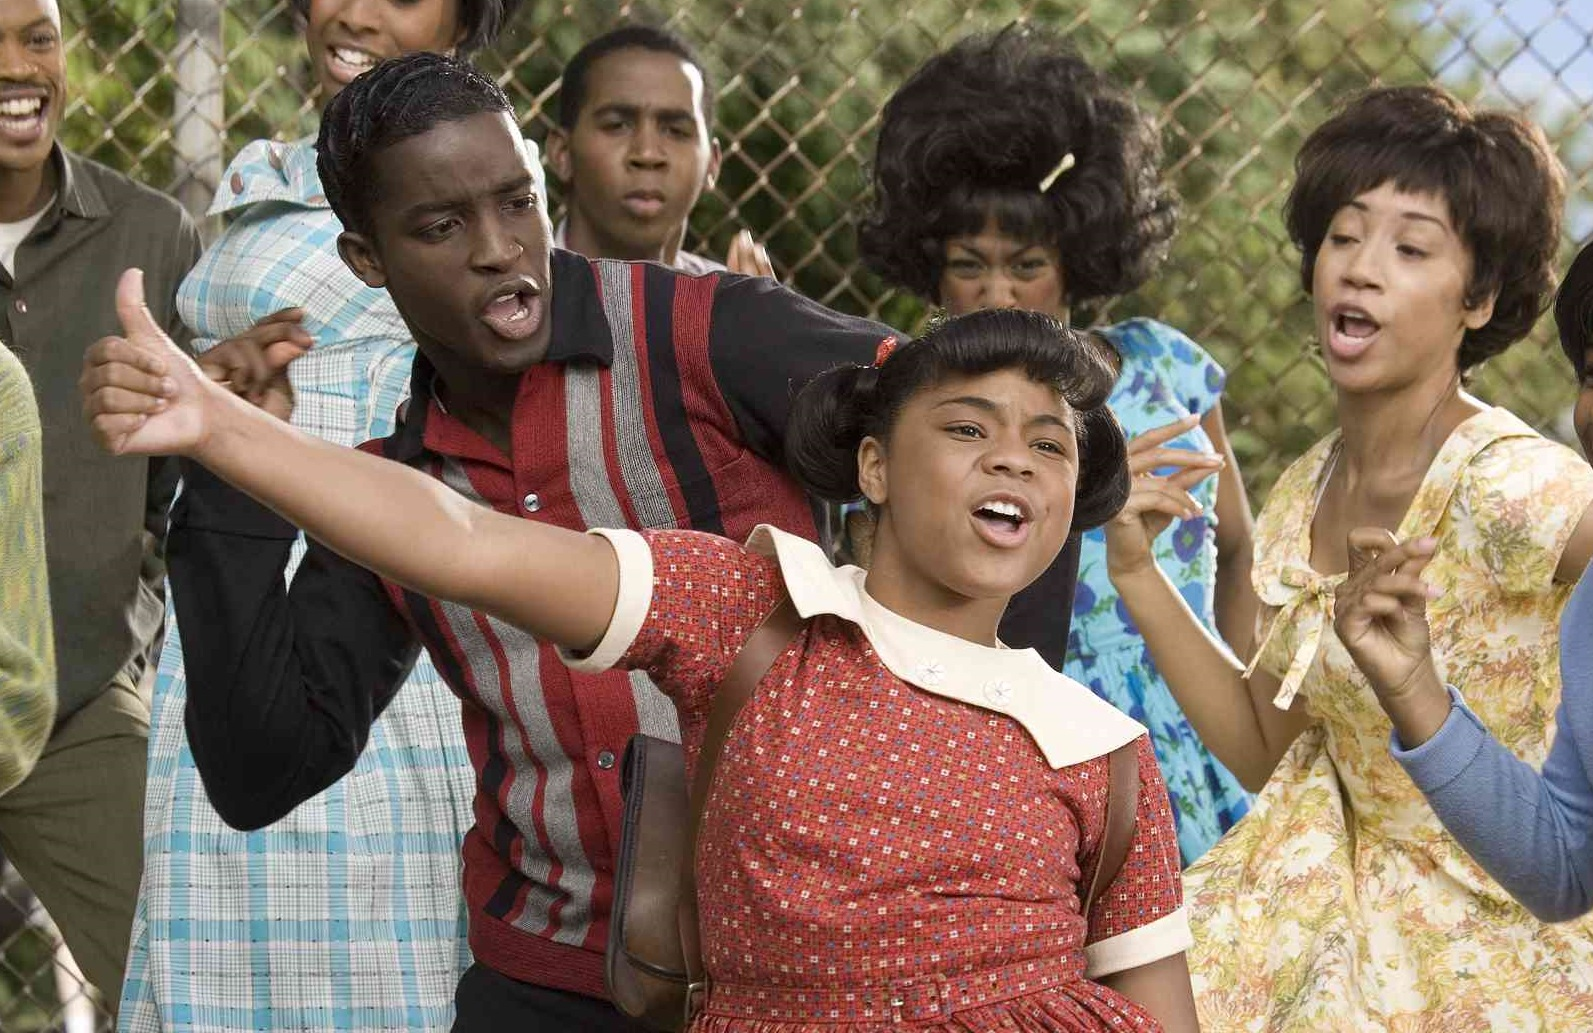 Remember Little Inez From Hairspray? She Doesn't Look Like This Anymore...